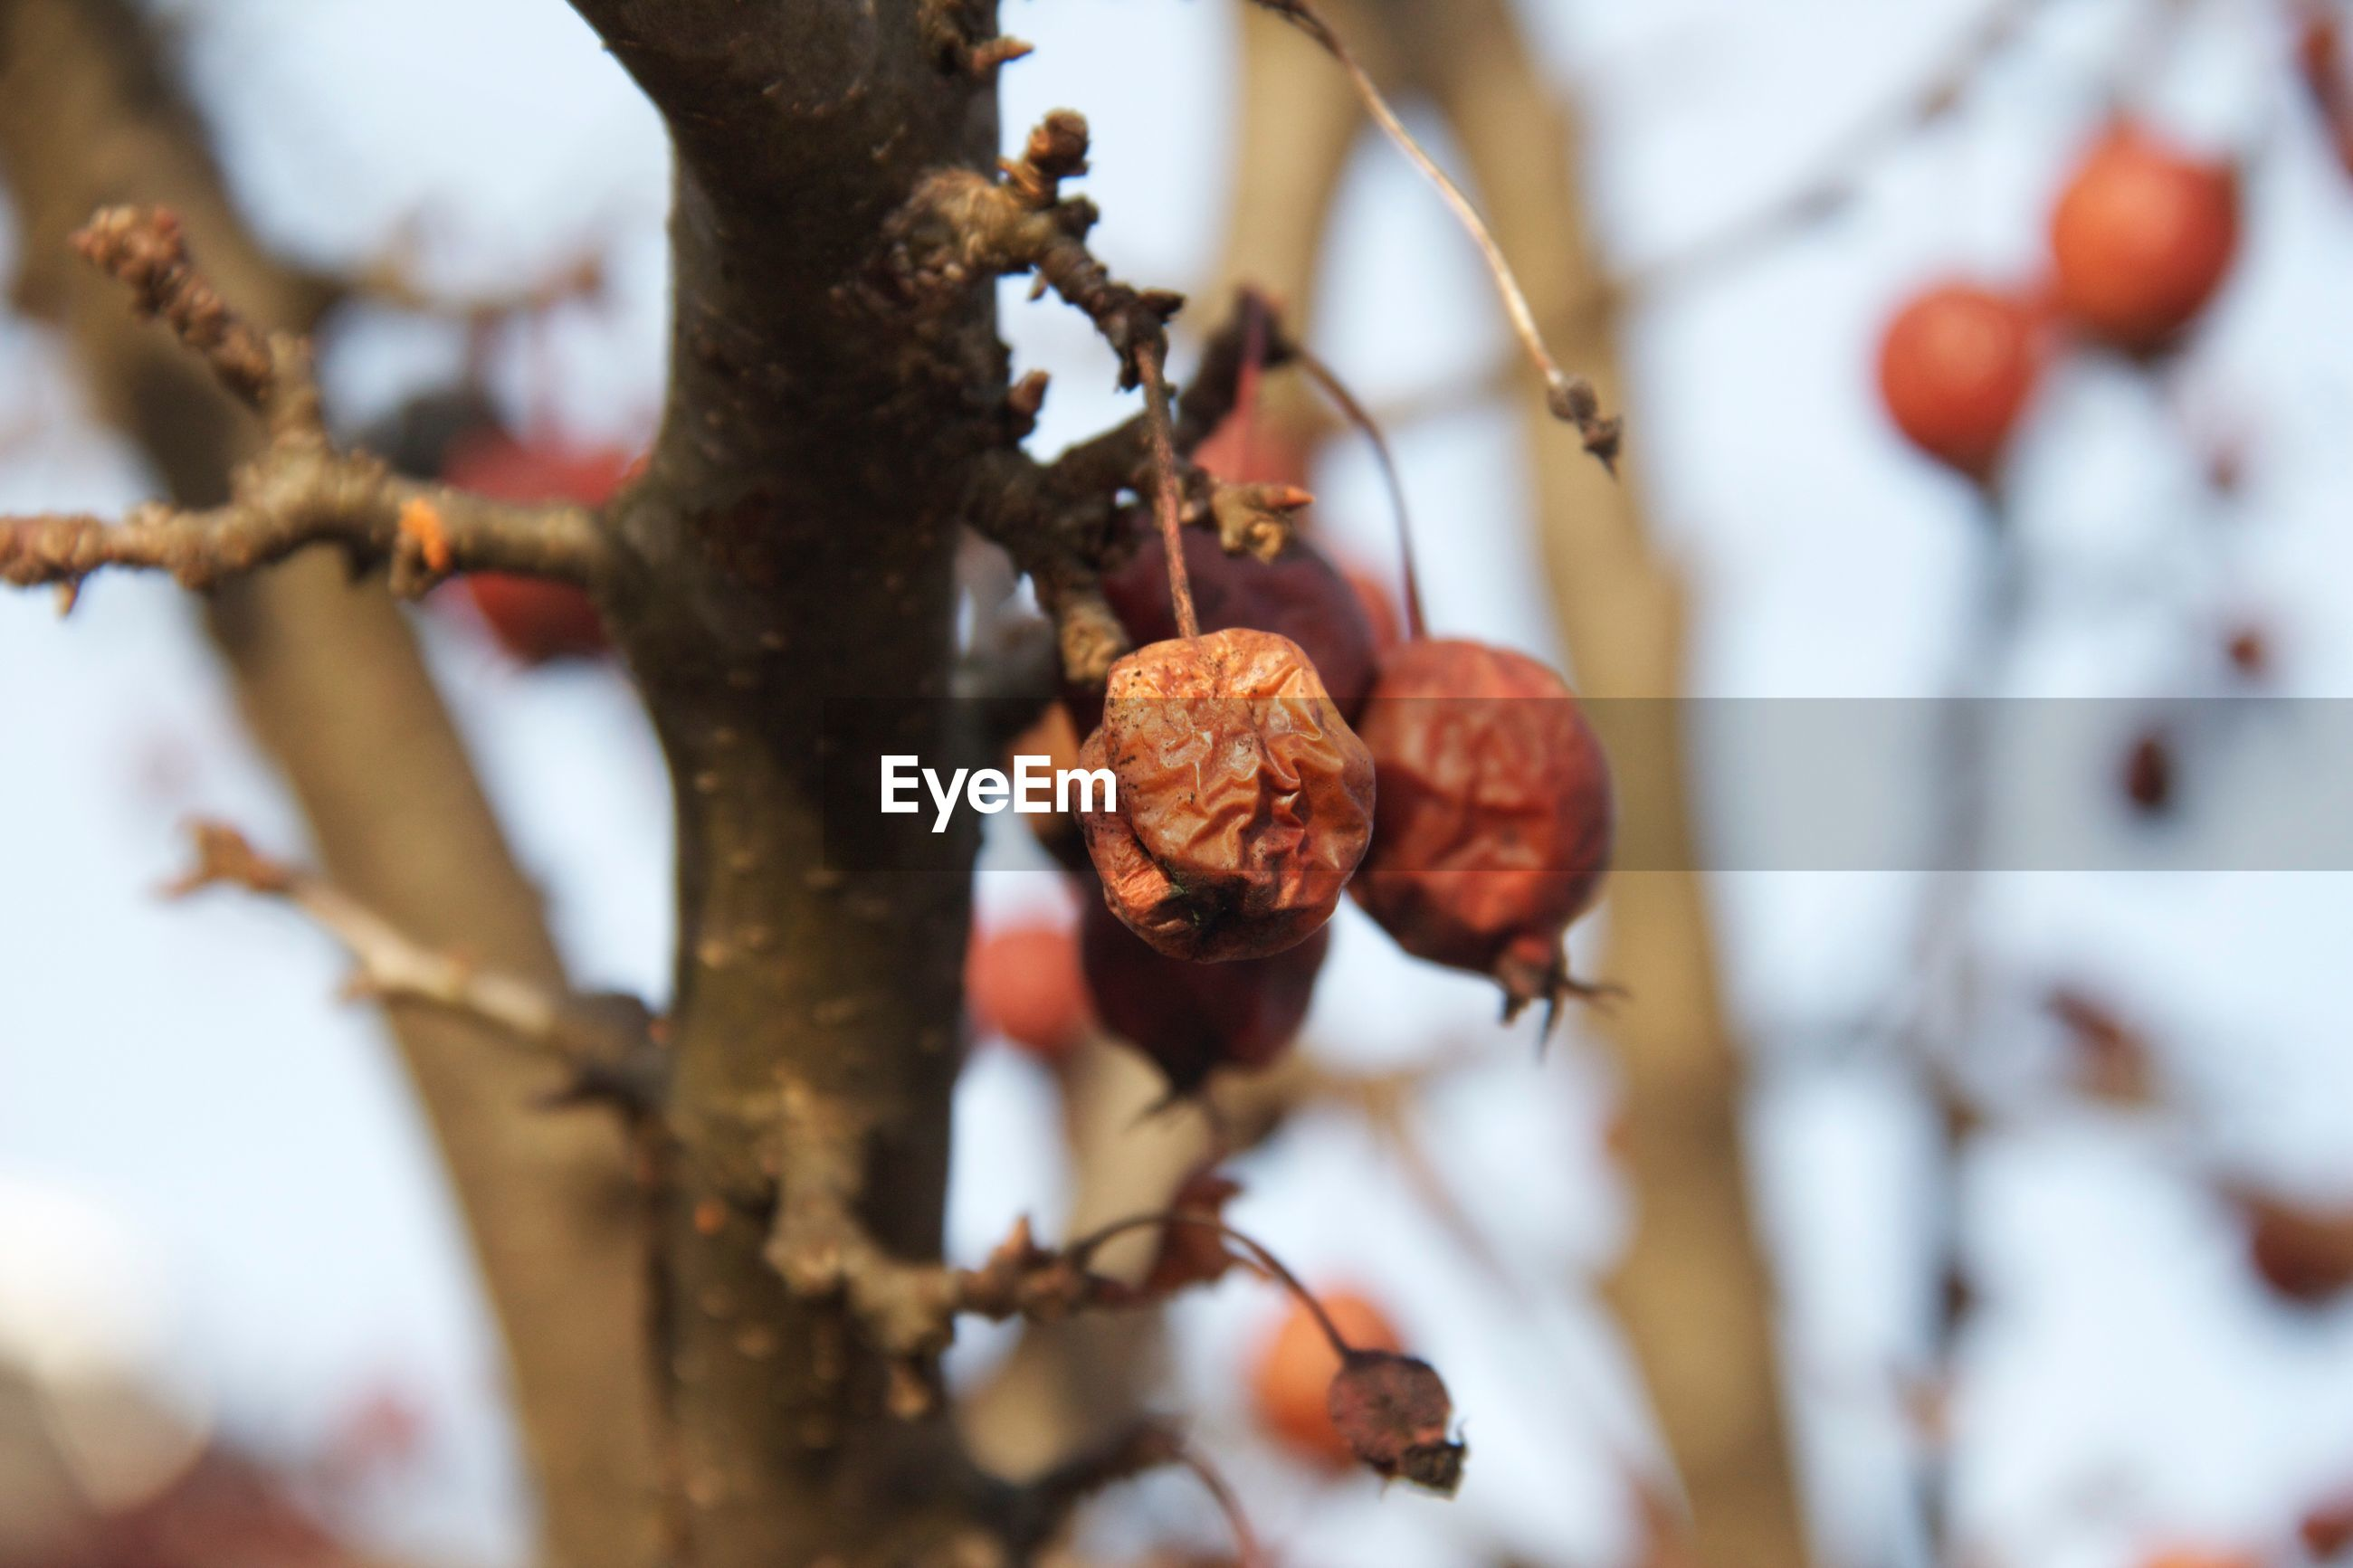 CLOSE-UP OF FRUIT ON TREE